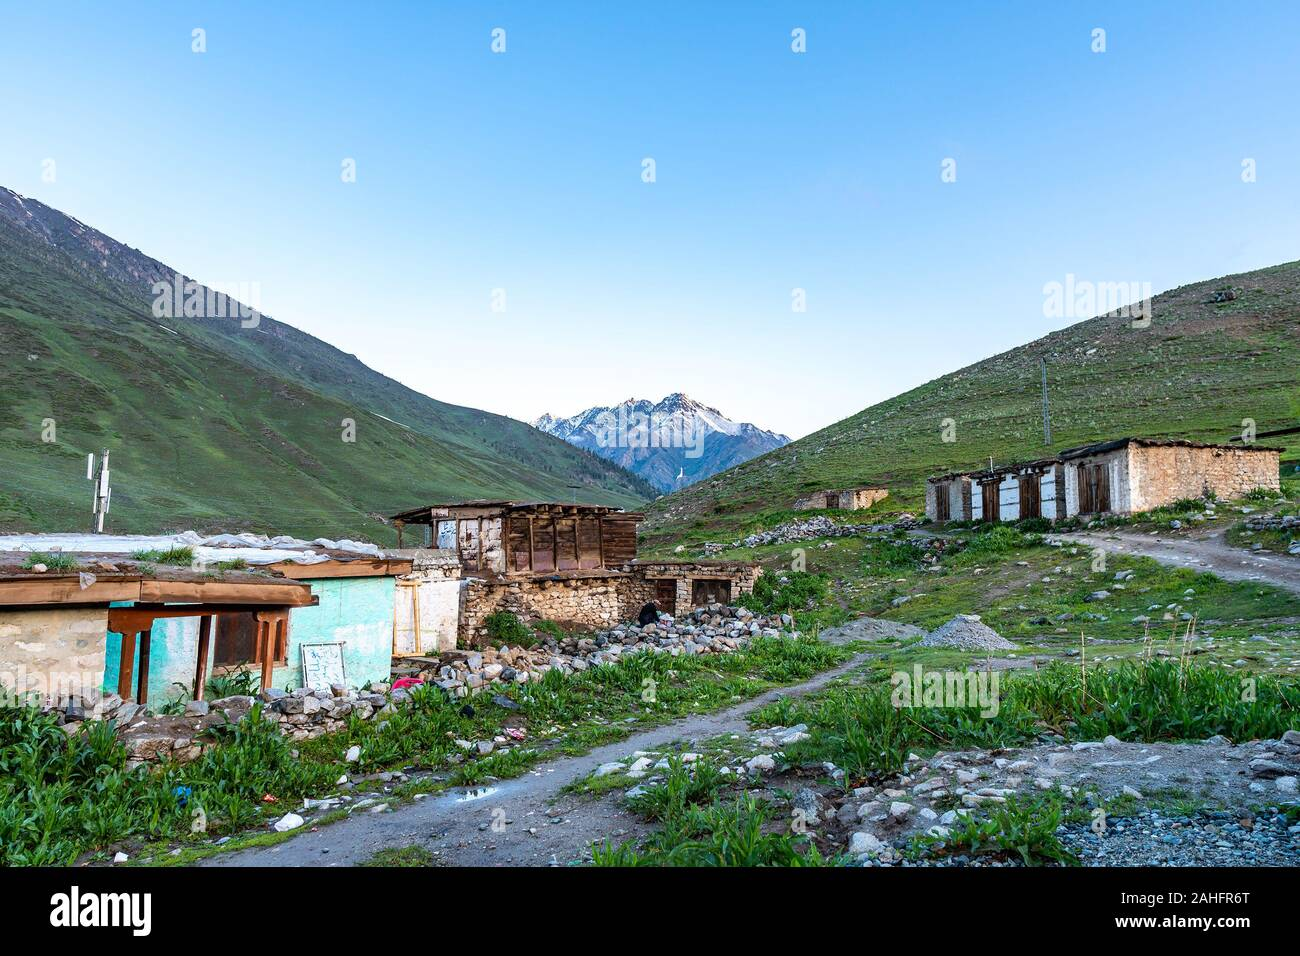 Deosai National Park Chilum Village Picturesque Breathtaking View in the Morning with Blue Sky Stock Photo